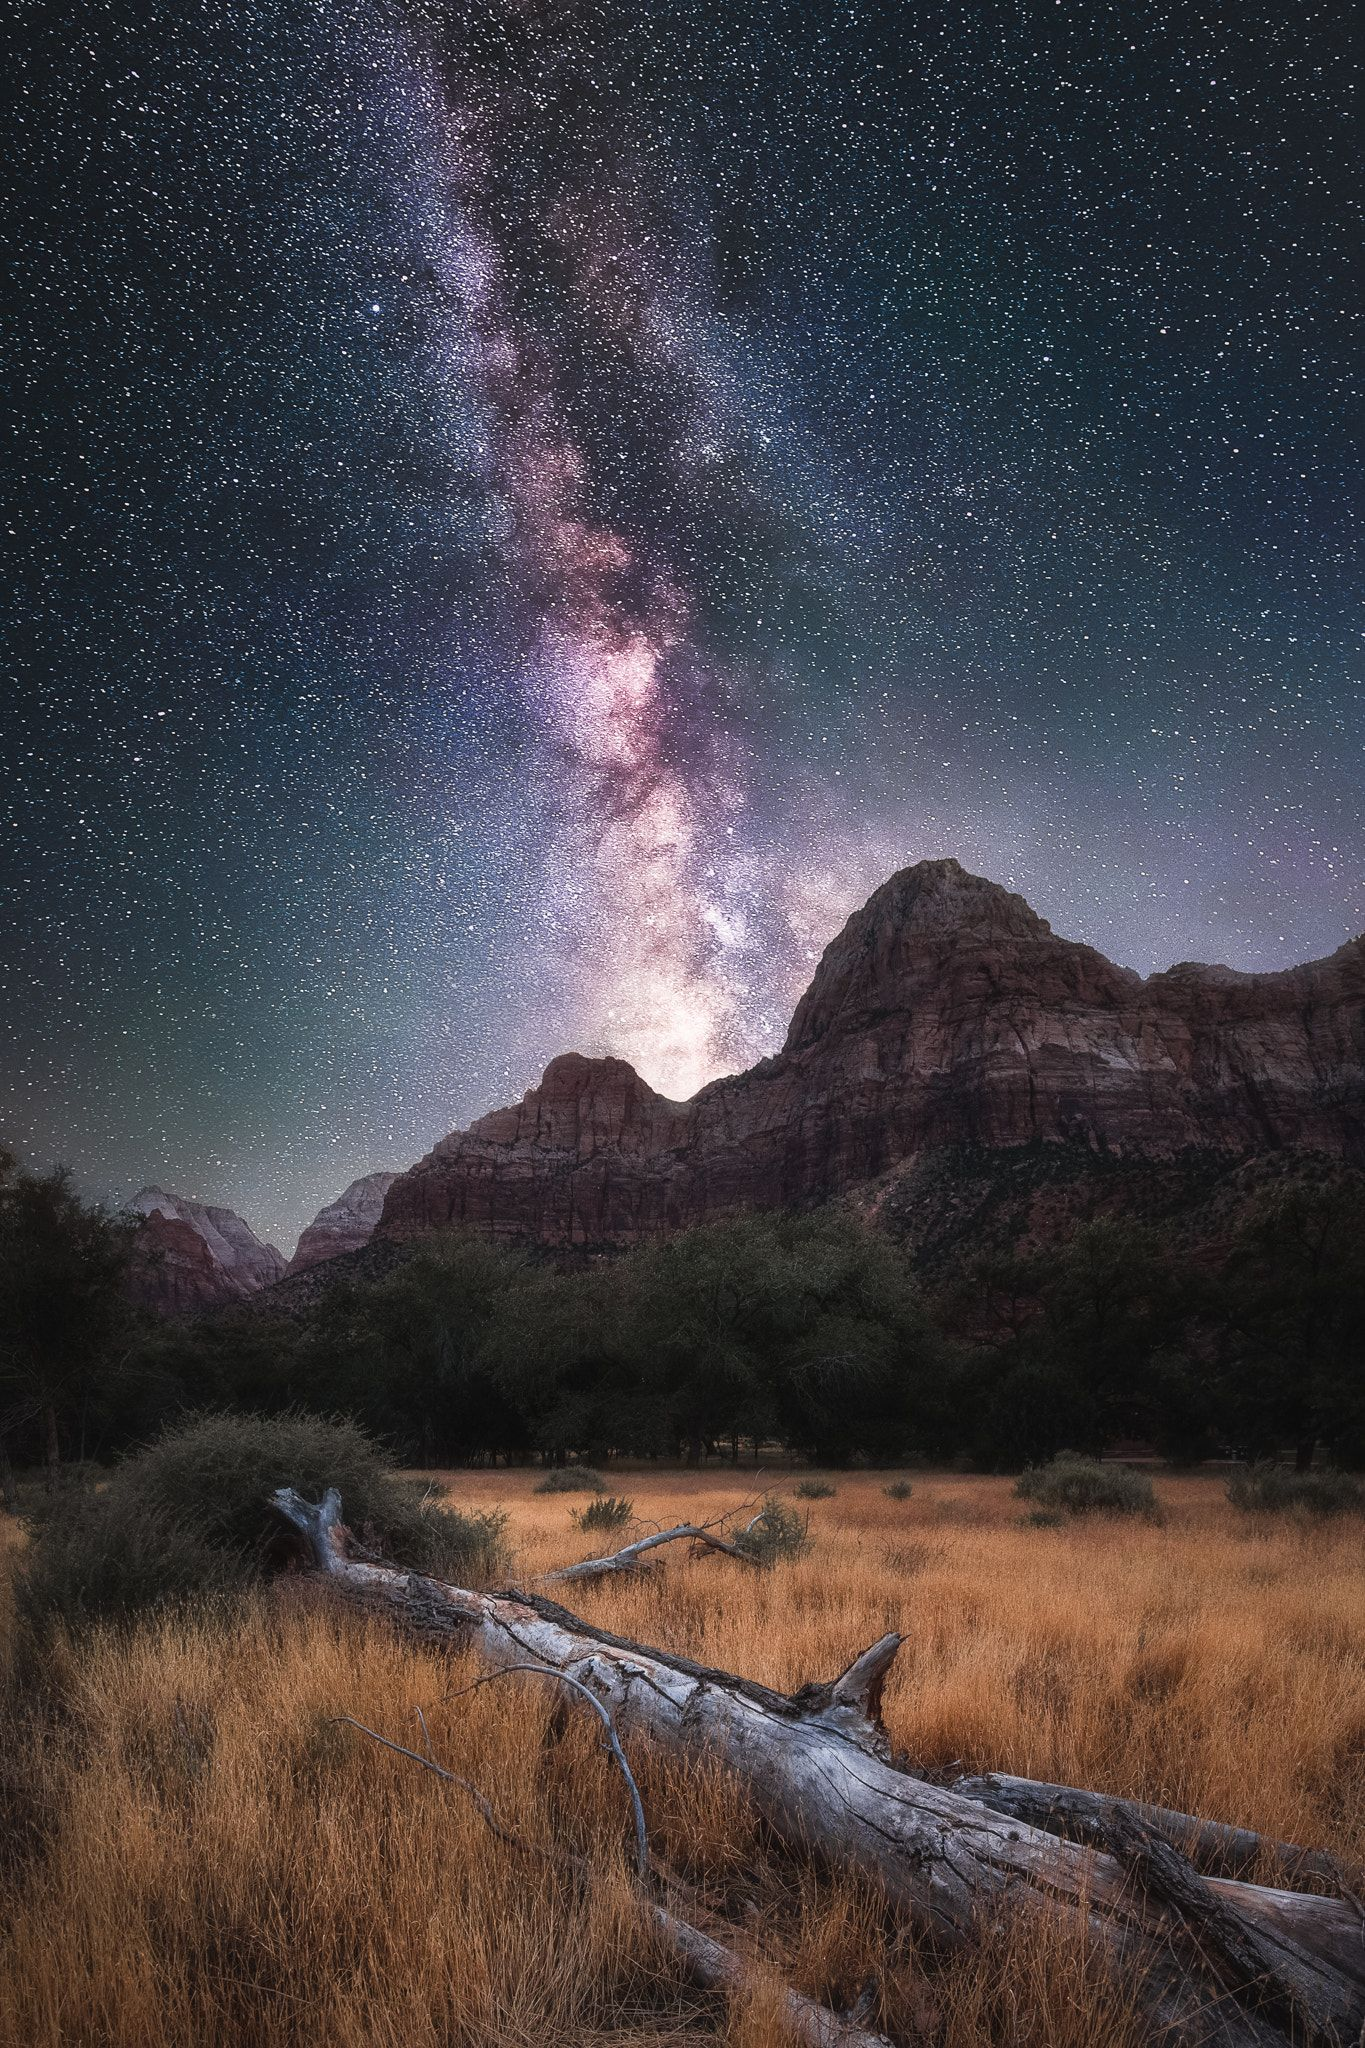 Canyon Of Stars Love Those Silent Nights Under The Milky Way What About You A Href Http Www T Landscape Pictures Nature Photography Beautiful Sky Night starry sky nebula stars landscape